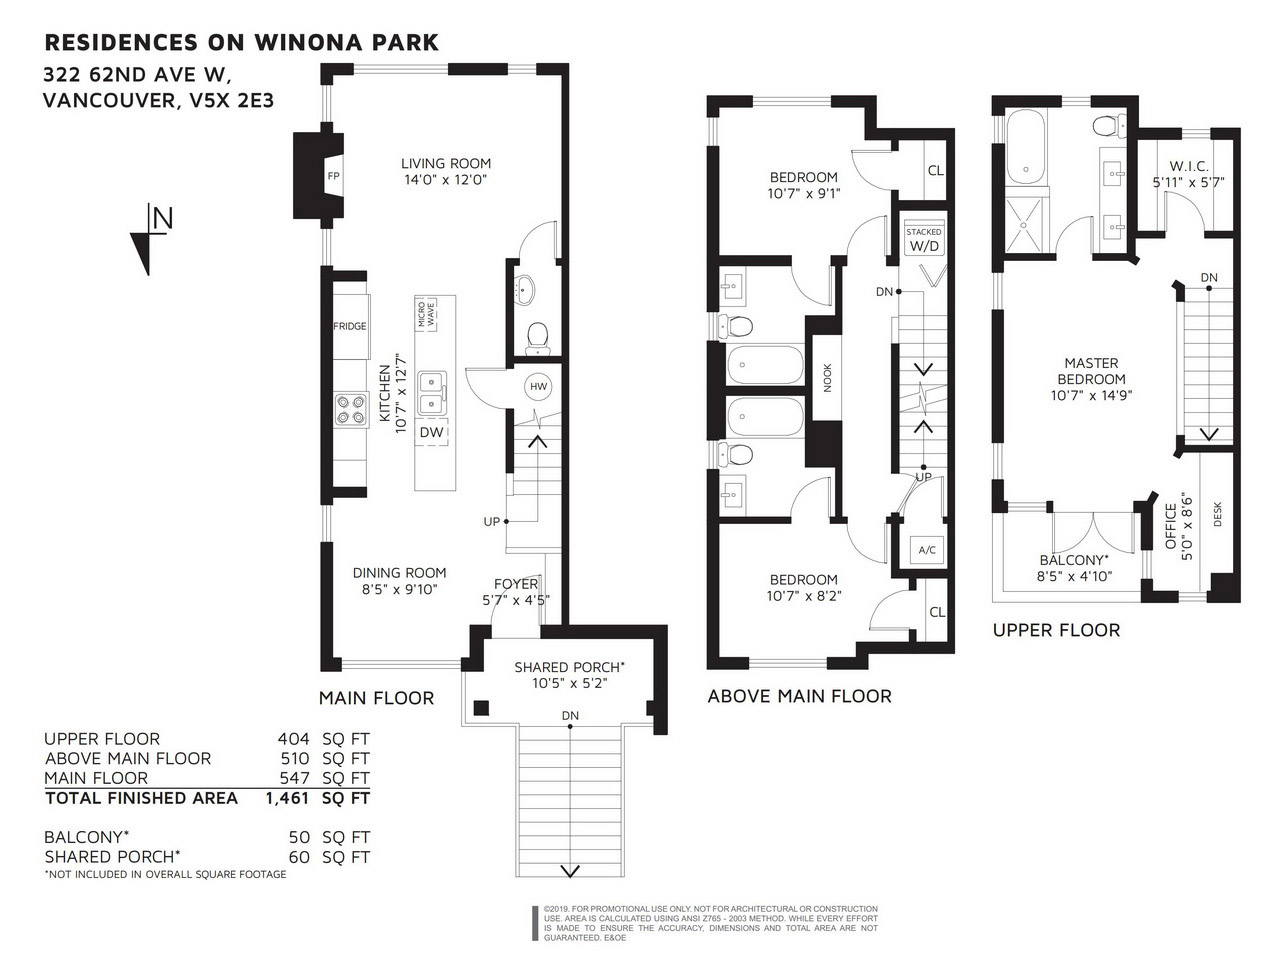 322 62ND AVE W IDX Floor Plan 800 X 600.jpg